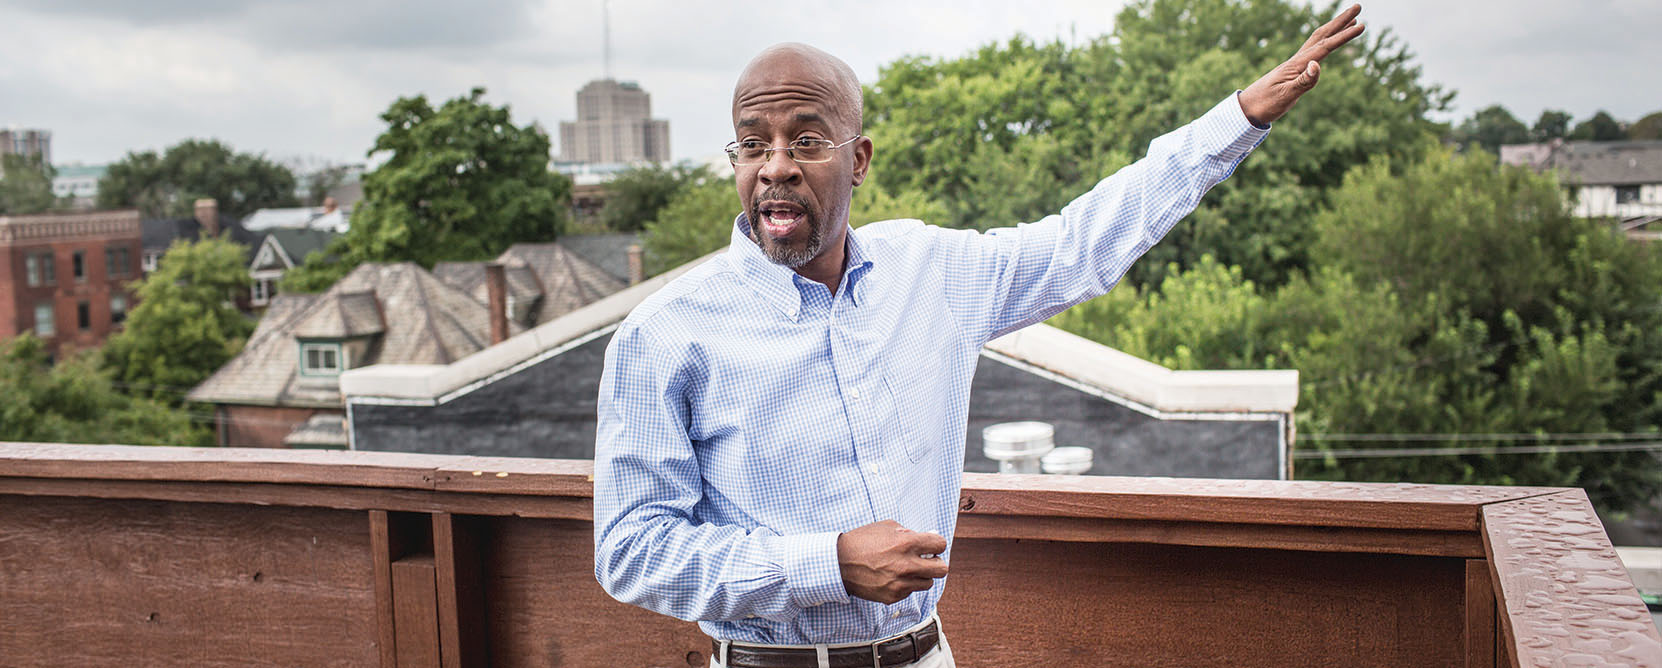 Richard Hosey poses on rooftop of building